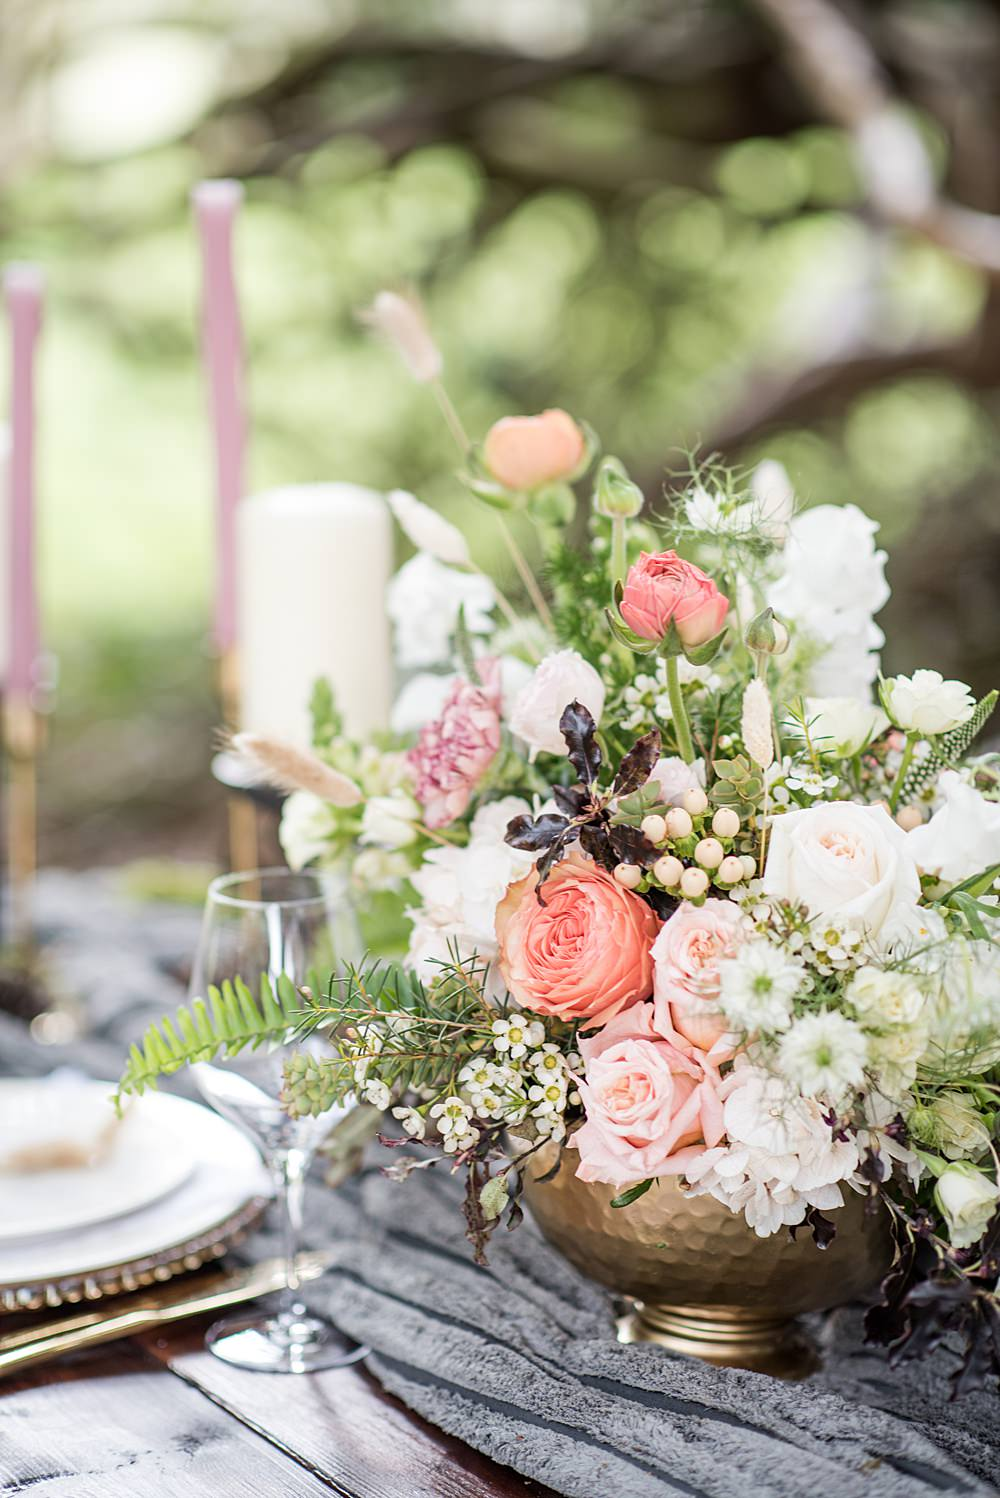 Flowers Urn Arrangement Floral Coral Greenery Foliage Rose Peach Gold Wedding Ideas Jane Beadnell Photography